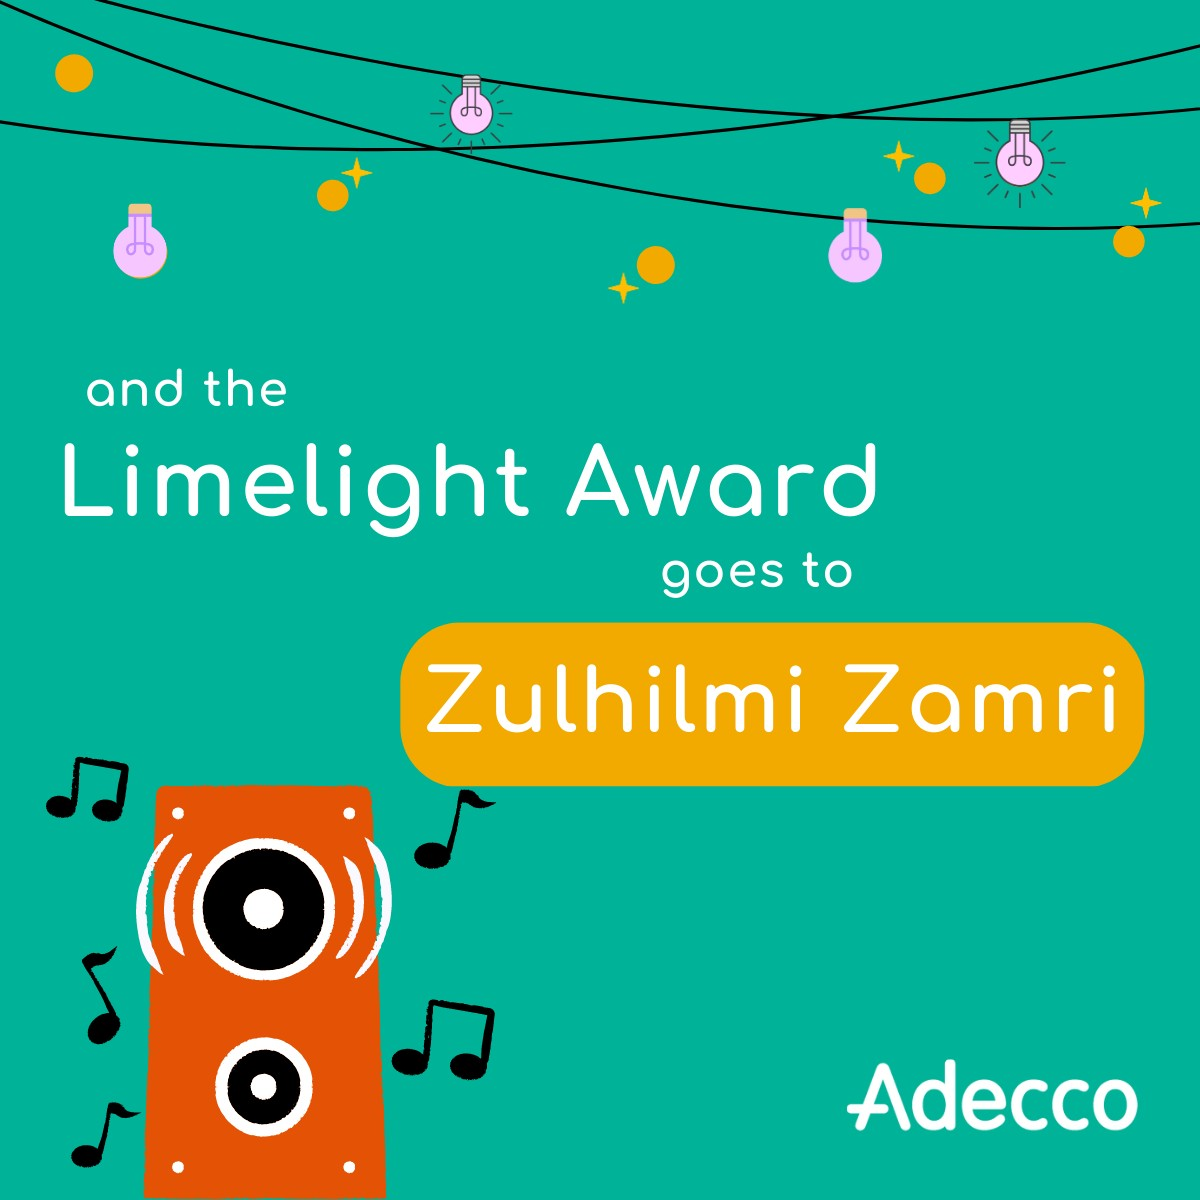 We like to give a shoutout to our teammate Zulhilmi Zamri for providing excellent service to our clients, partners, associates, and candidates! Keep up the excellent work!  #adecco #adeccomalaysia #recognition #appreciation #achievement https://t.co/Dj0wK8OMIQ